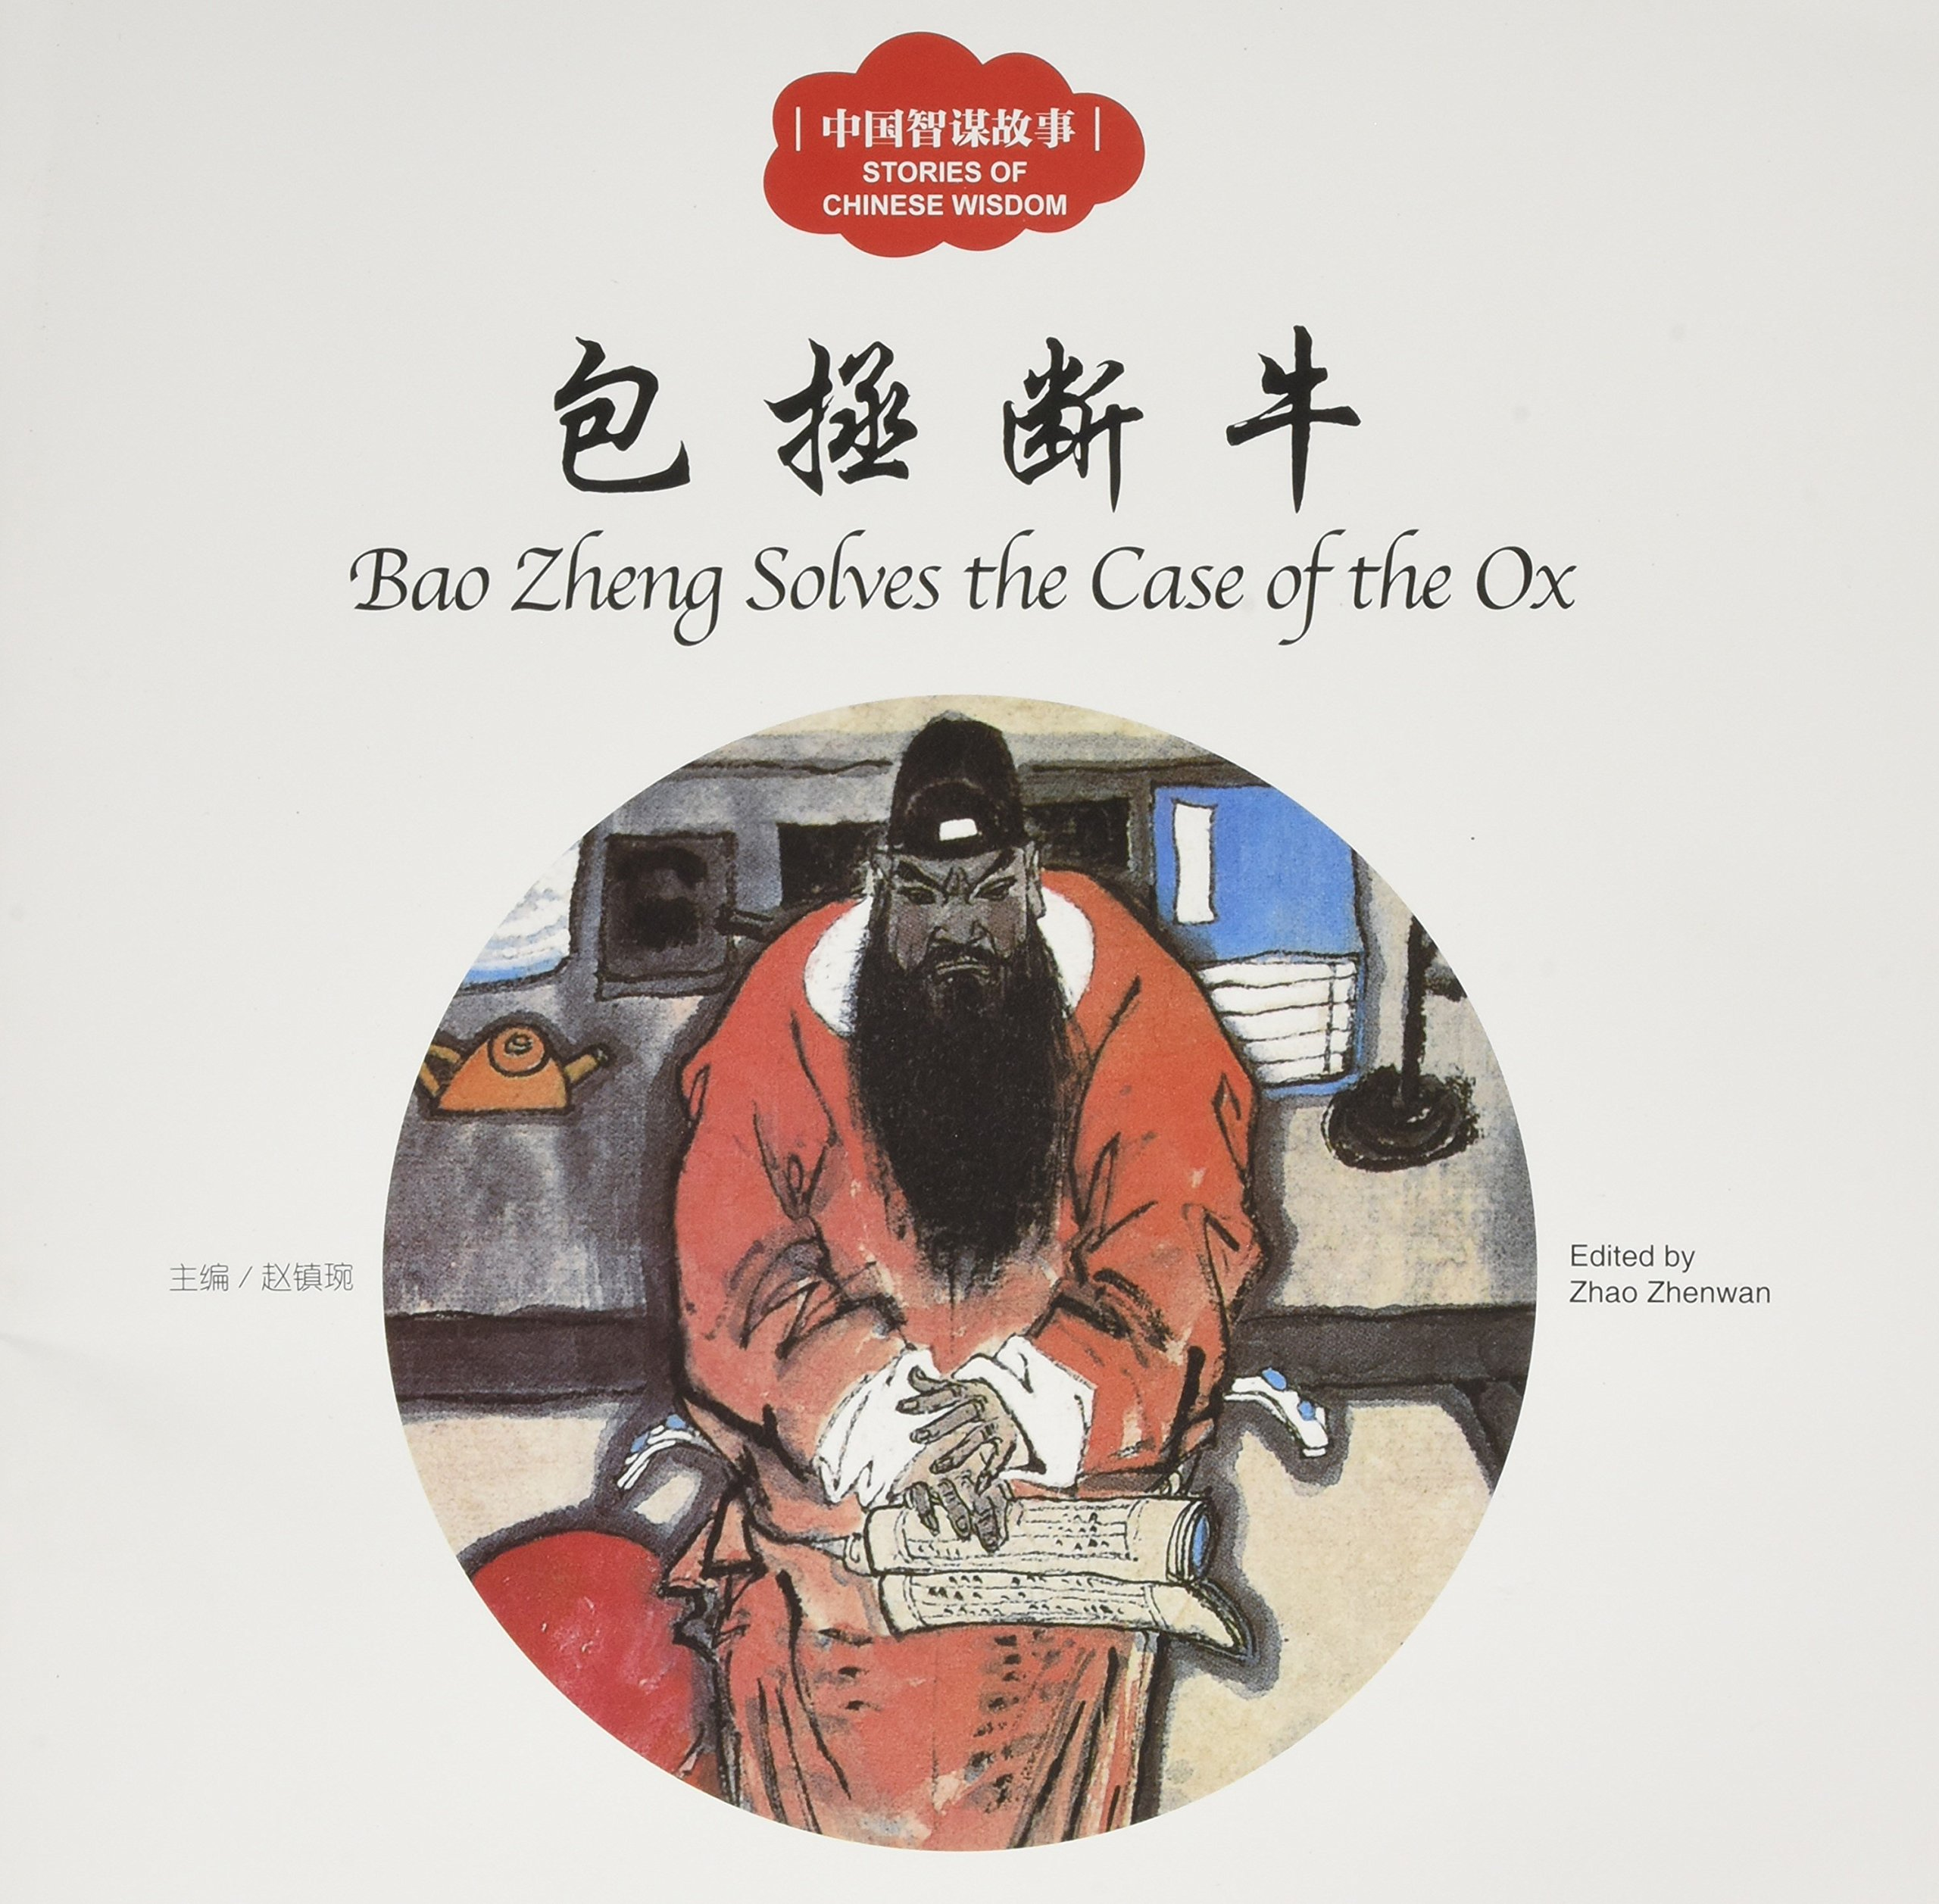 Bao Zheng Solves the Case of the Ox - First Books for Early Learning Series